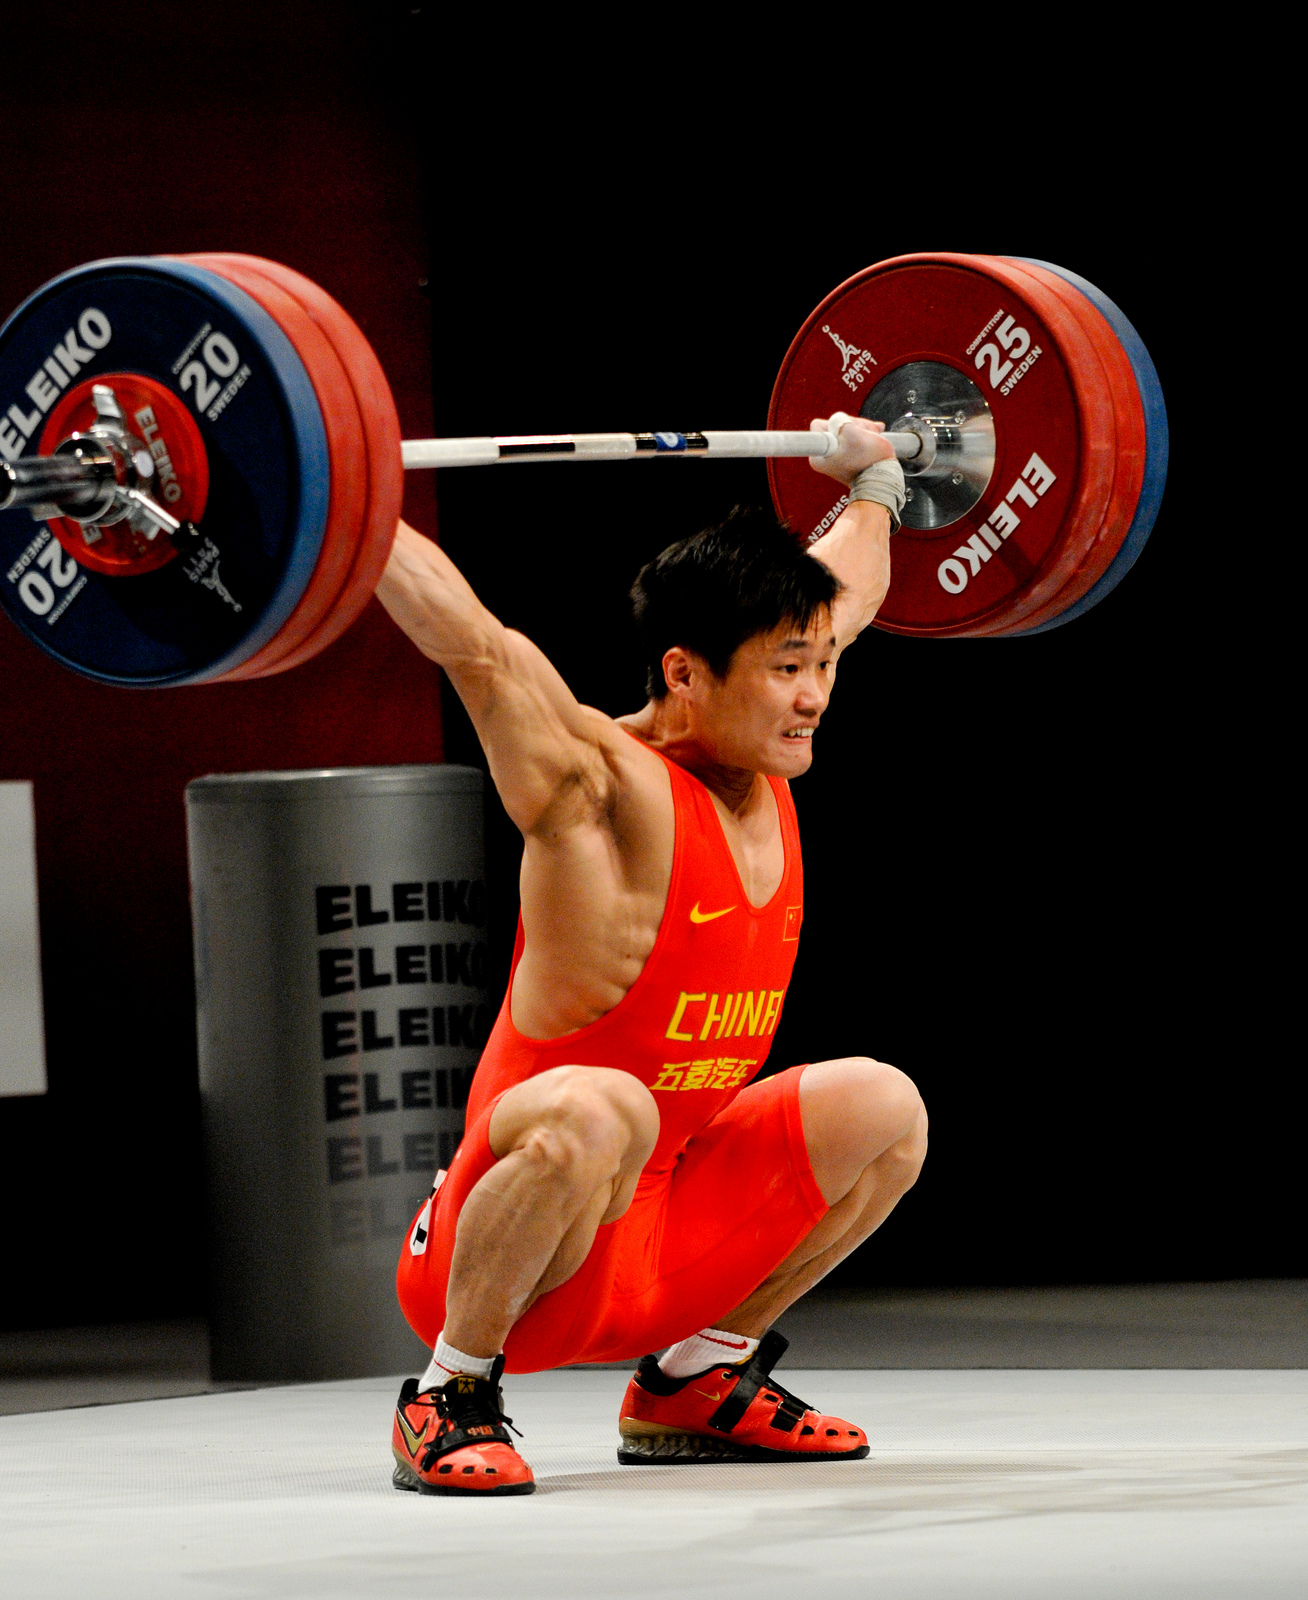 Breaking Down Weightlifting Movements: The Snatch